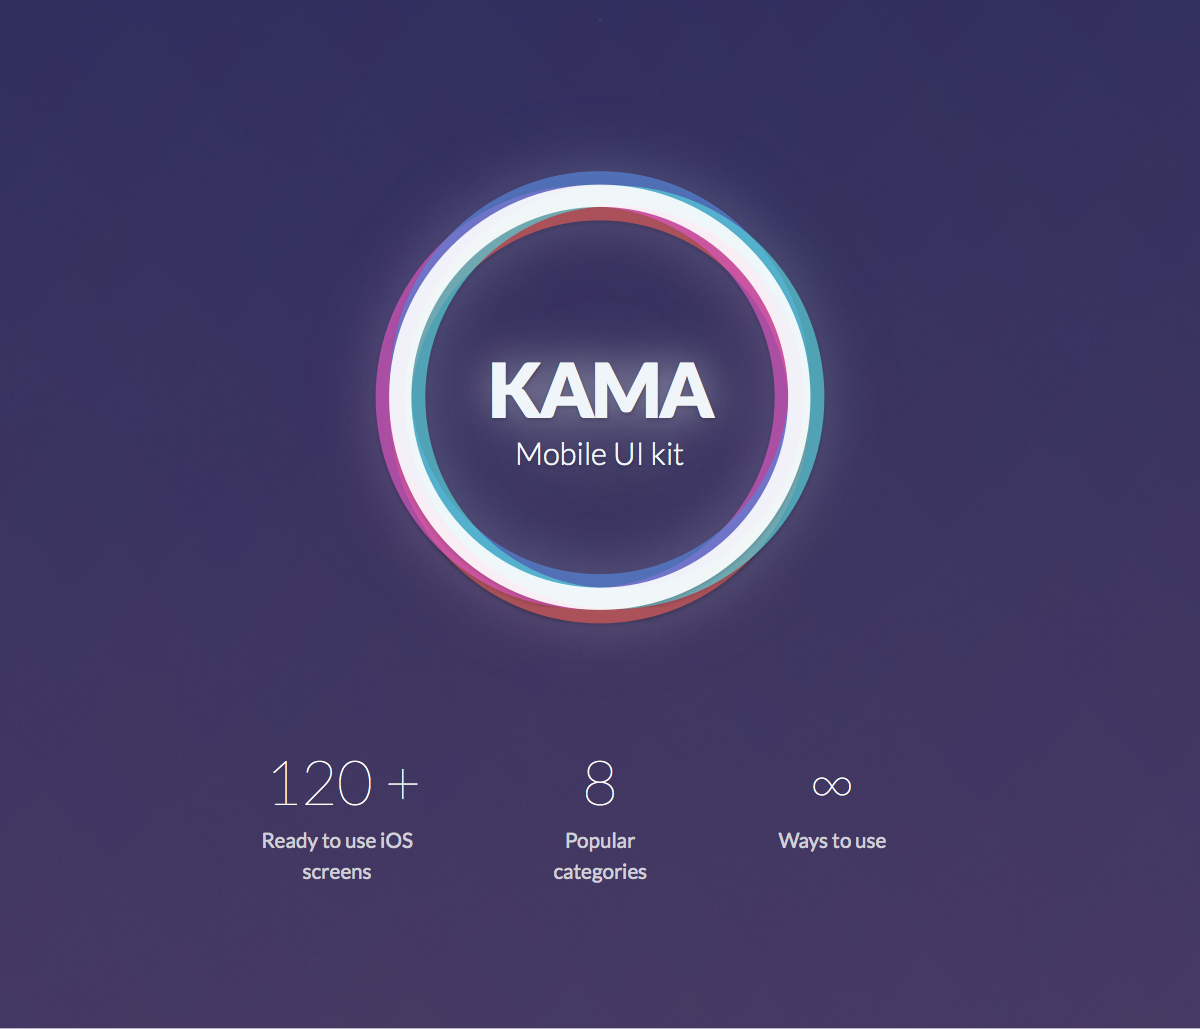 Kama iOS UI Kit for Sketch & Photoshop - 68747470733a2f2f302e73332e656e7661746f2e636f6d2f66696c65732f3136383134373535302f5468656d65253230507265766965772f312532302d2532306865726f2e706e67